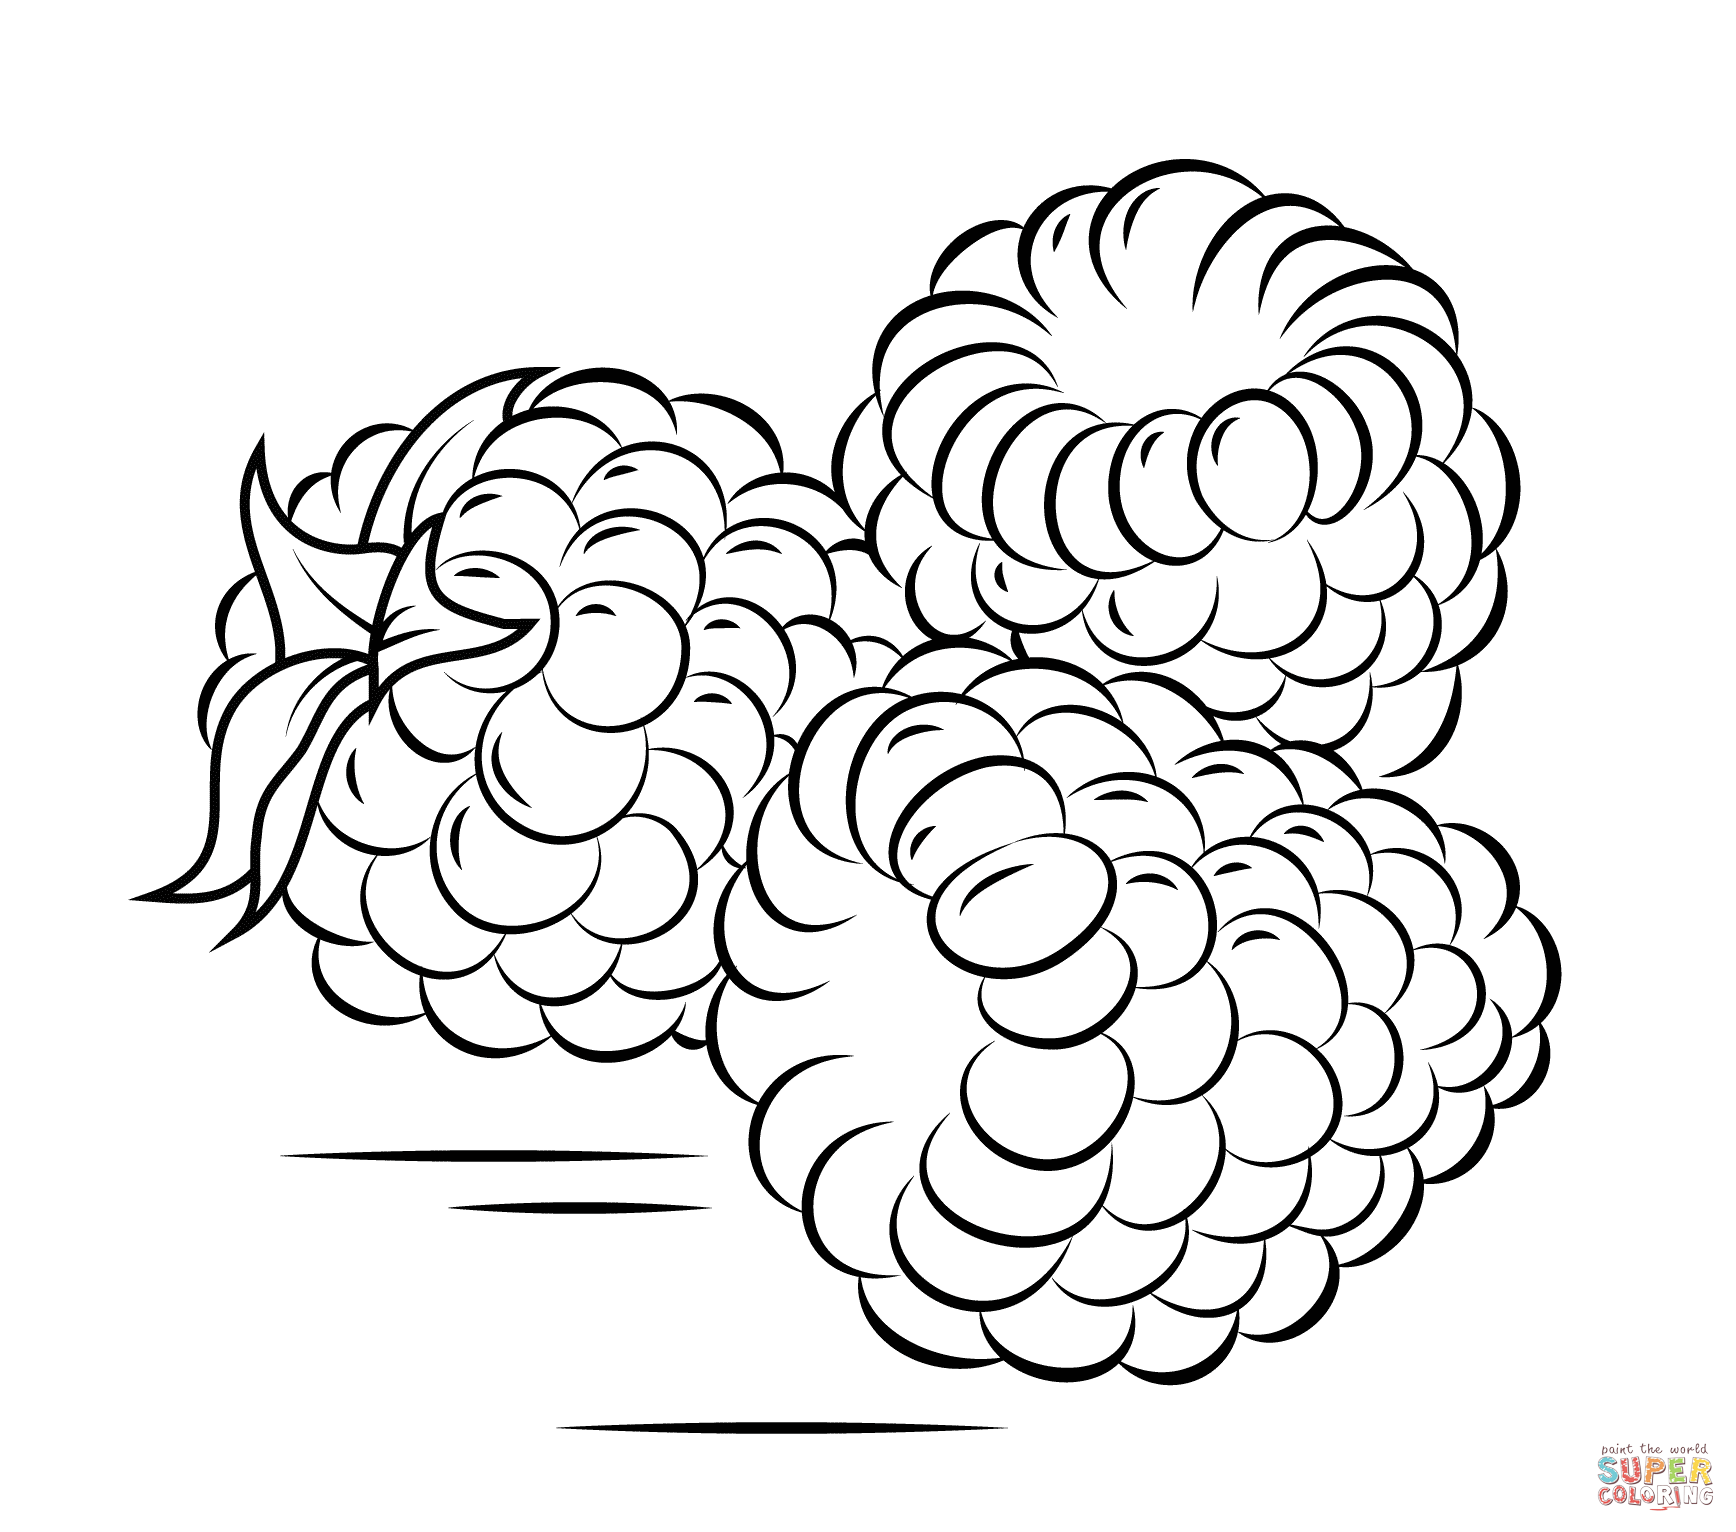 Raspberry coloring #14, Download drawings